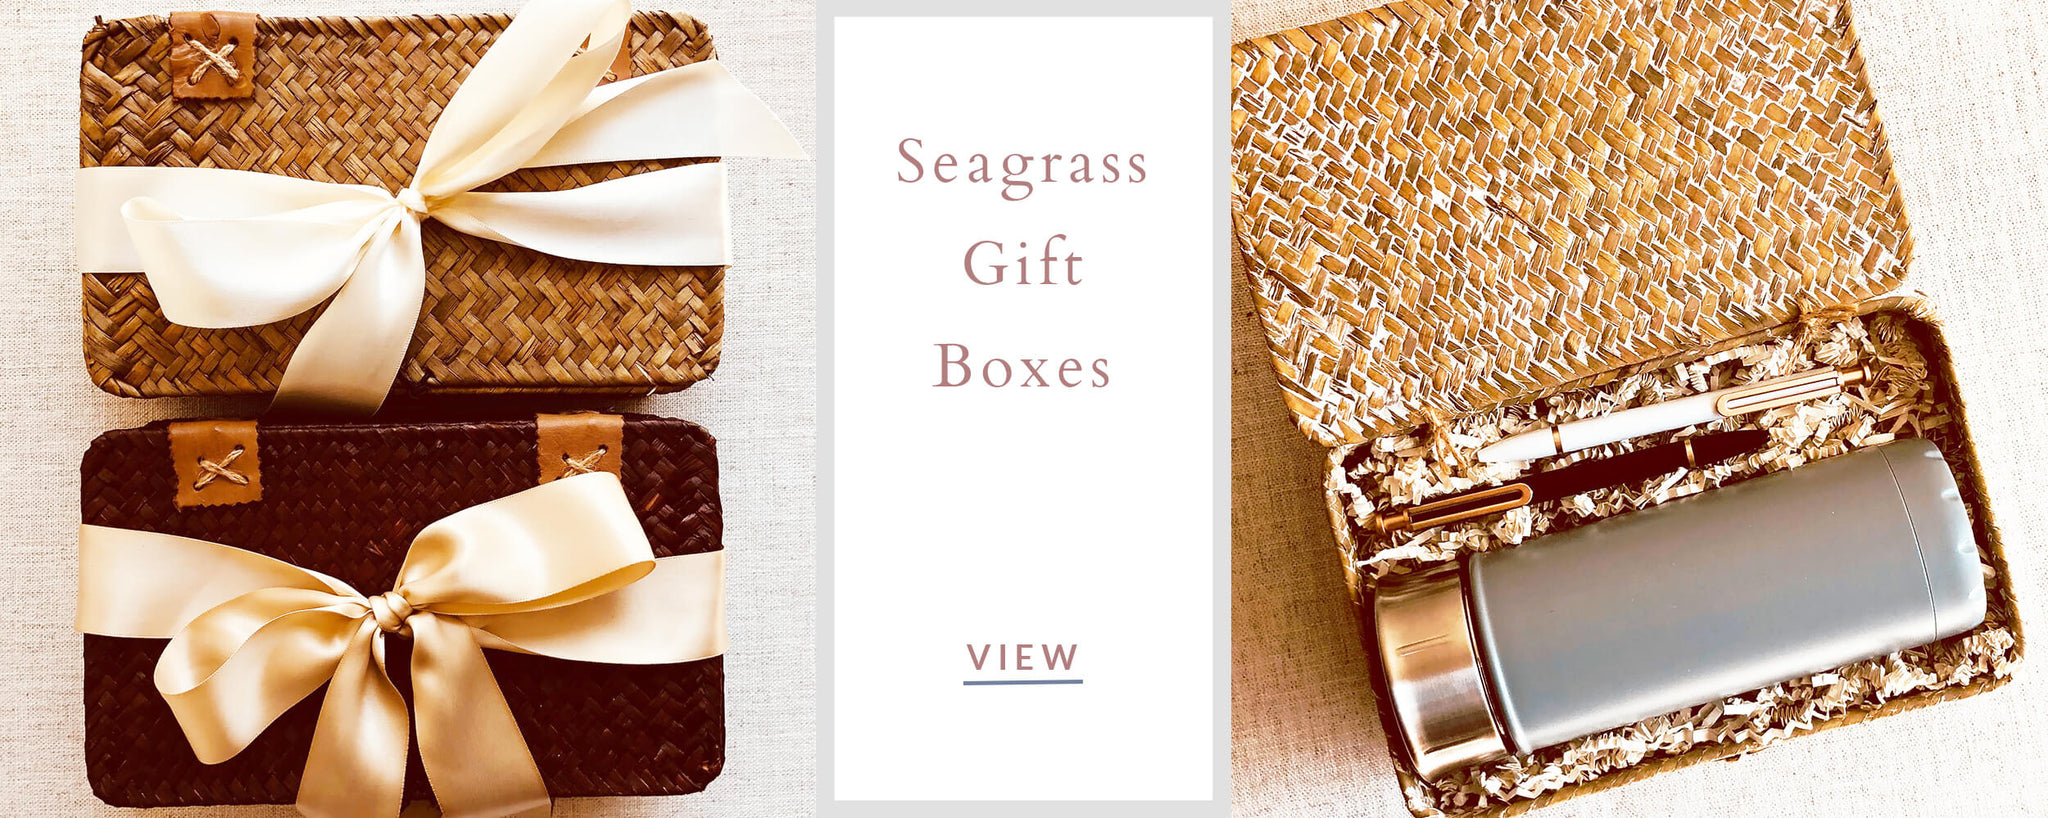 Custom Corporate Gifts - Seagrass Gift Boxes